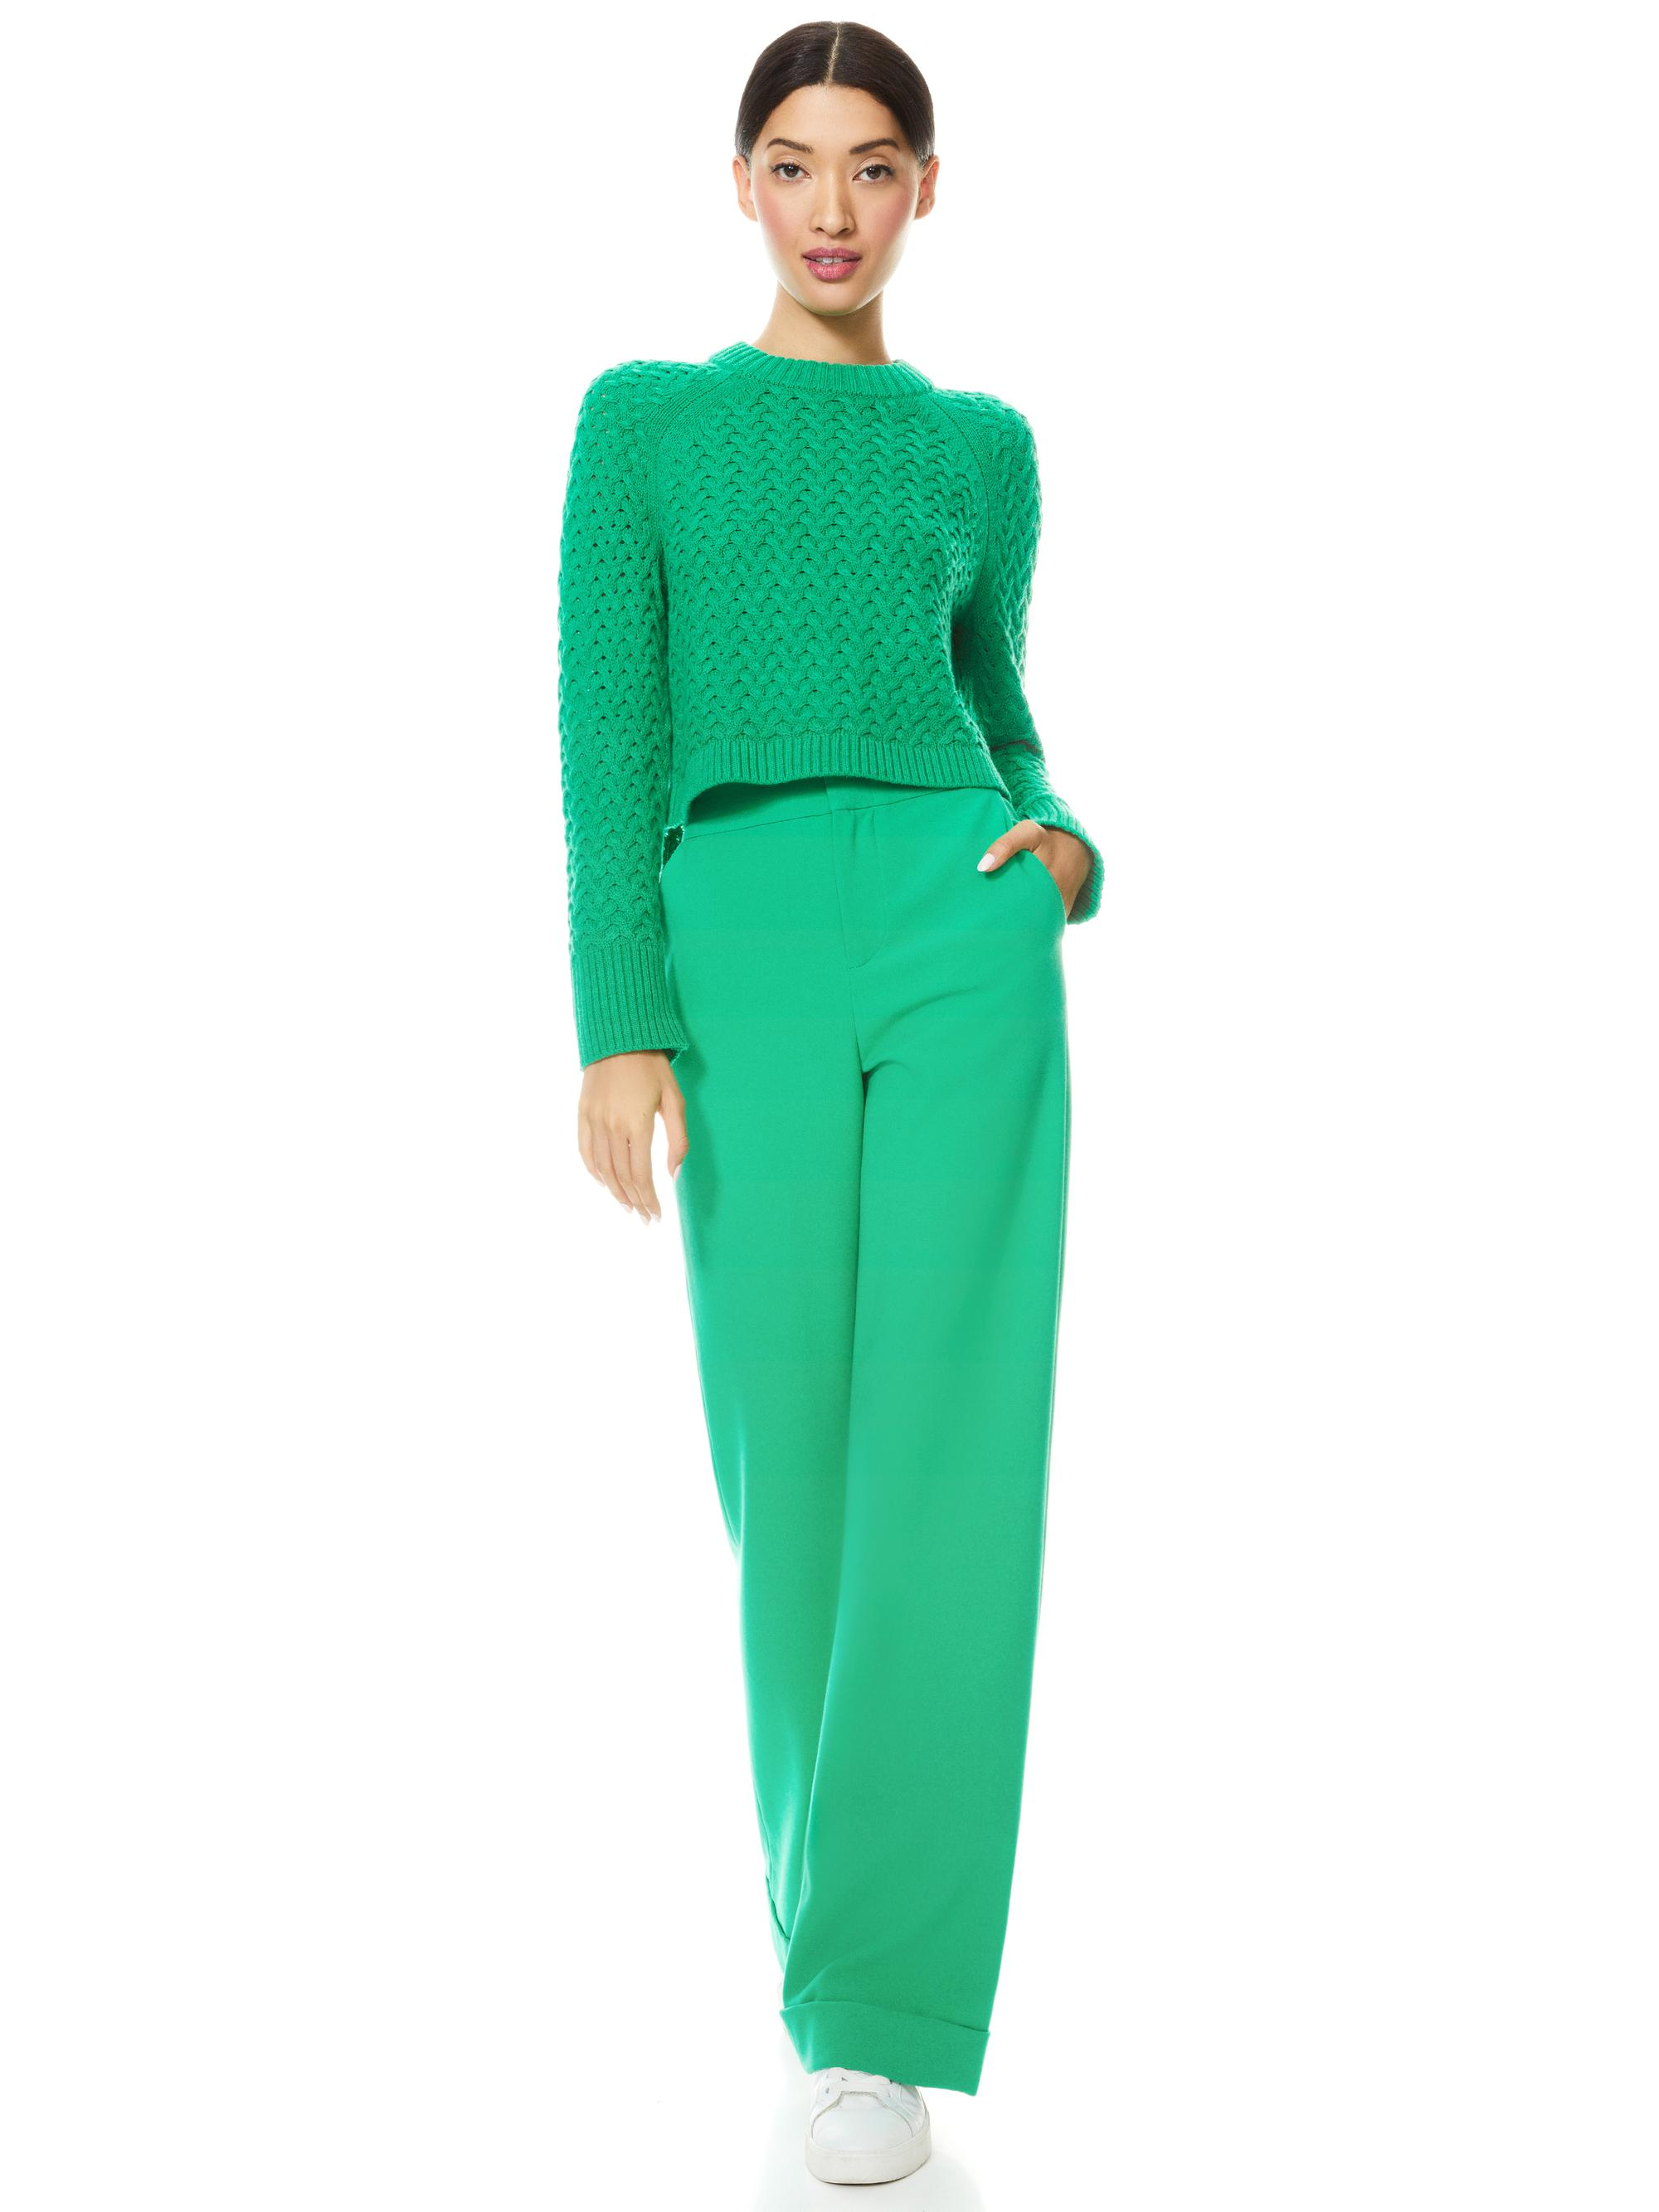 LETA CROPPED PULLOVER 2